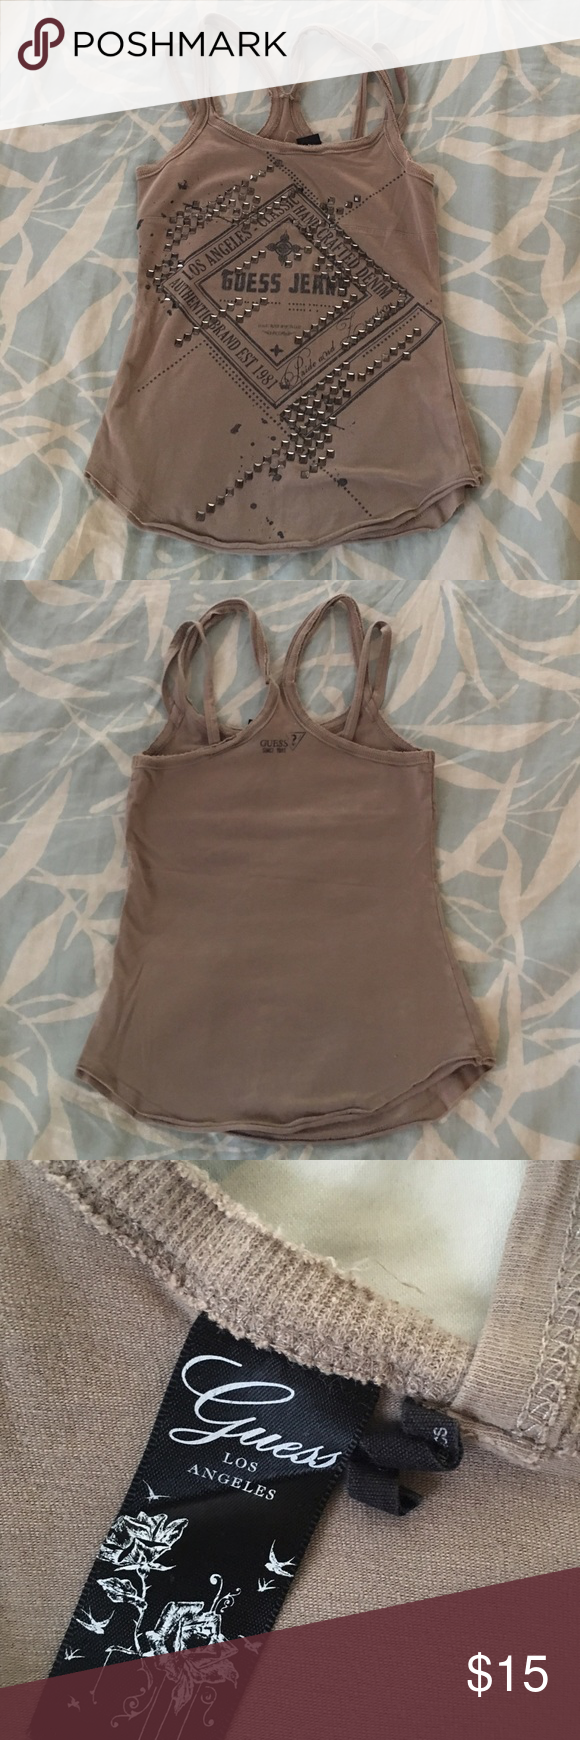 """Studded Guess Tank XS Tan studded Guess tank in great condition. Has a """"worn"""" look on straps. Super comfy material. Guess Tops Tank Tops"""